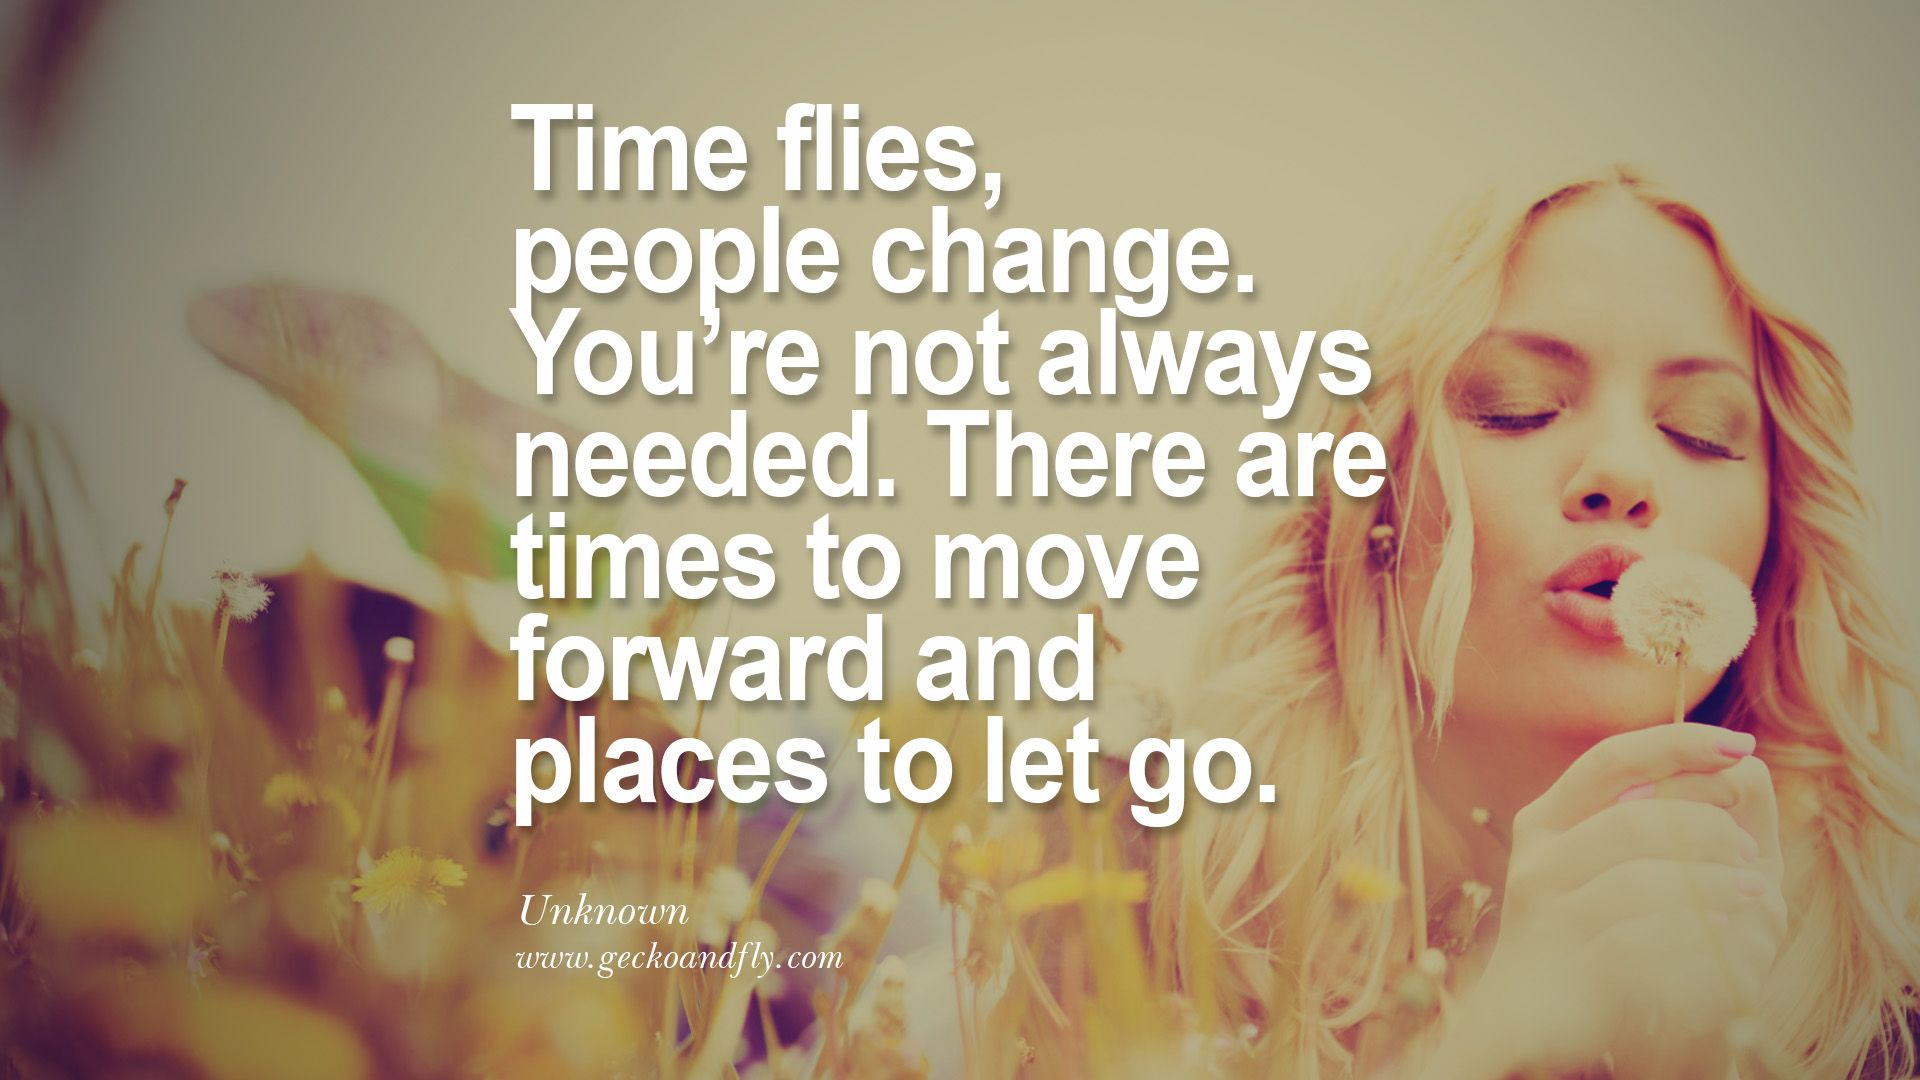 Quotes About Moving On And Letting Go 50 Quotes About Moving On And Letting Go Of Relationship And Love